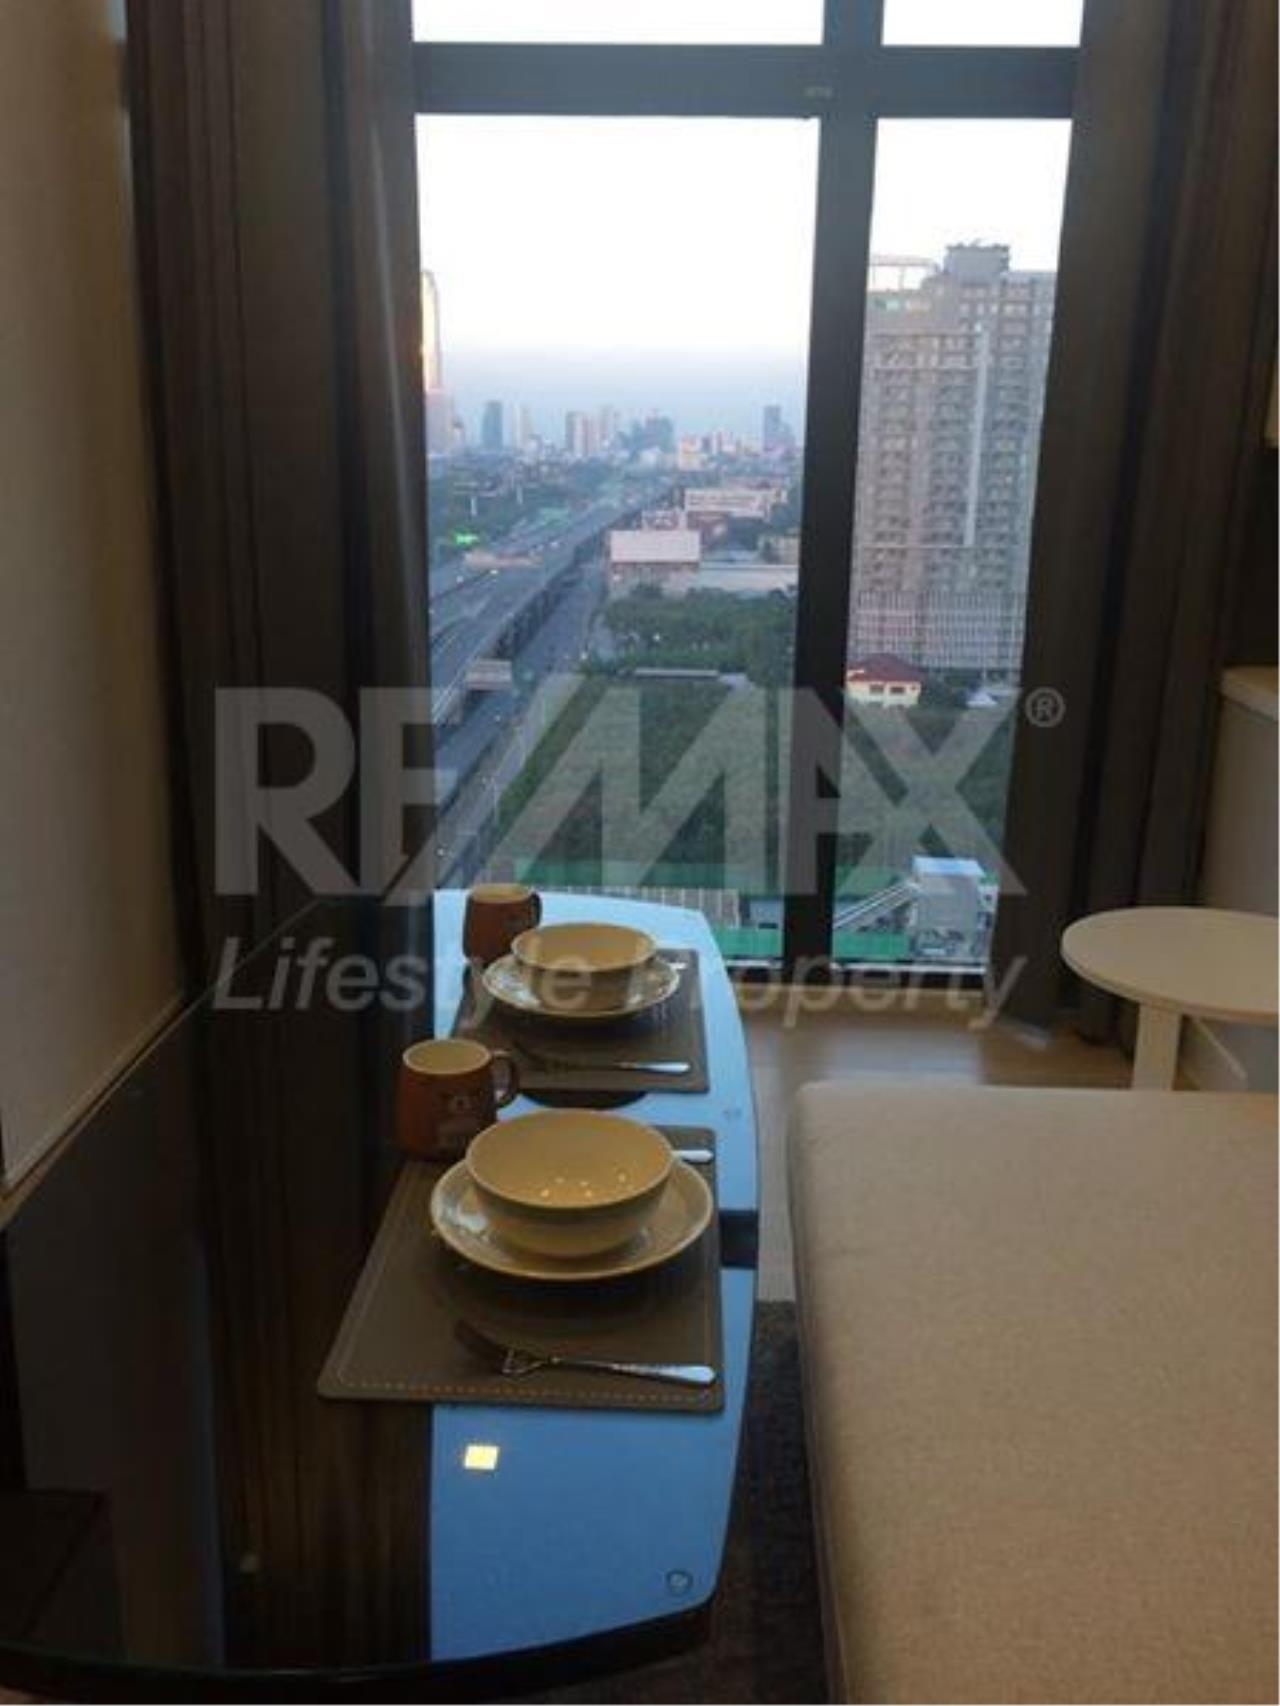 RE/MAX LifeStyle Property Agency's Chewathai Residence Asoke 2